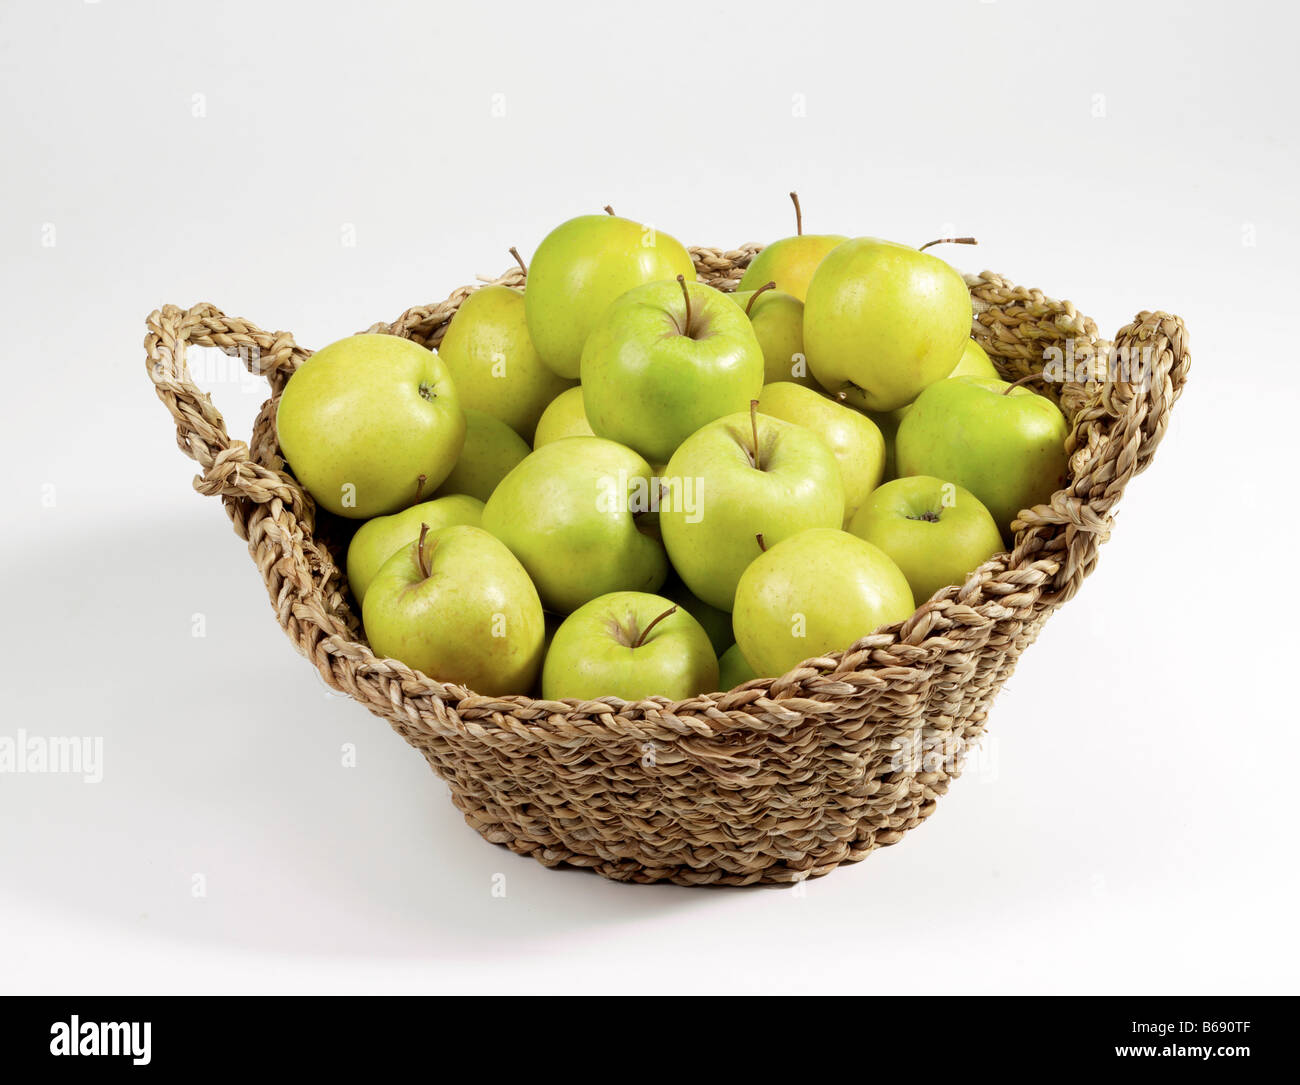 golden delicious apples basket white background Stock Photo